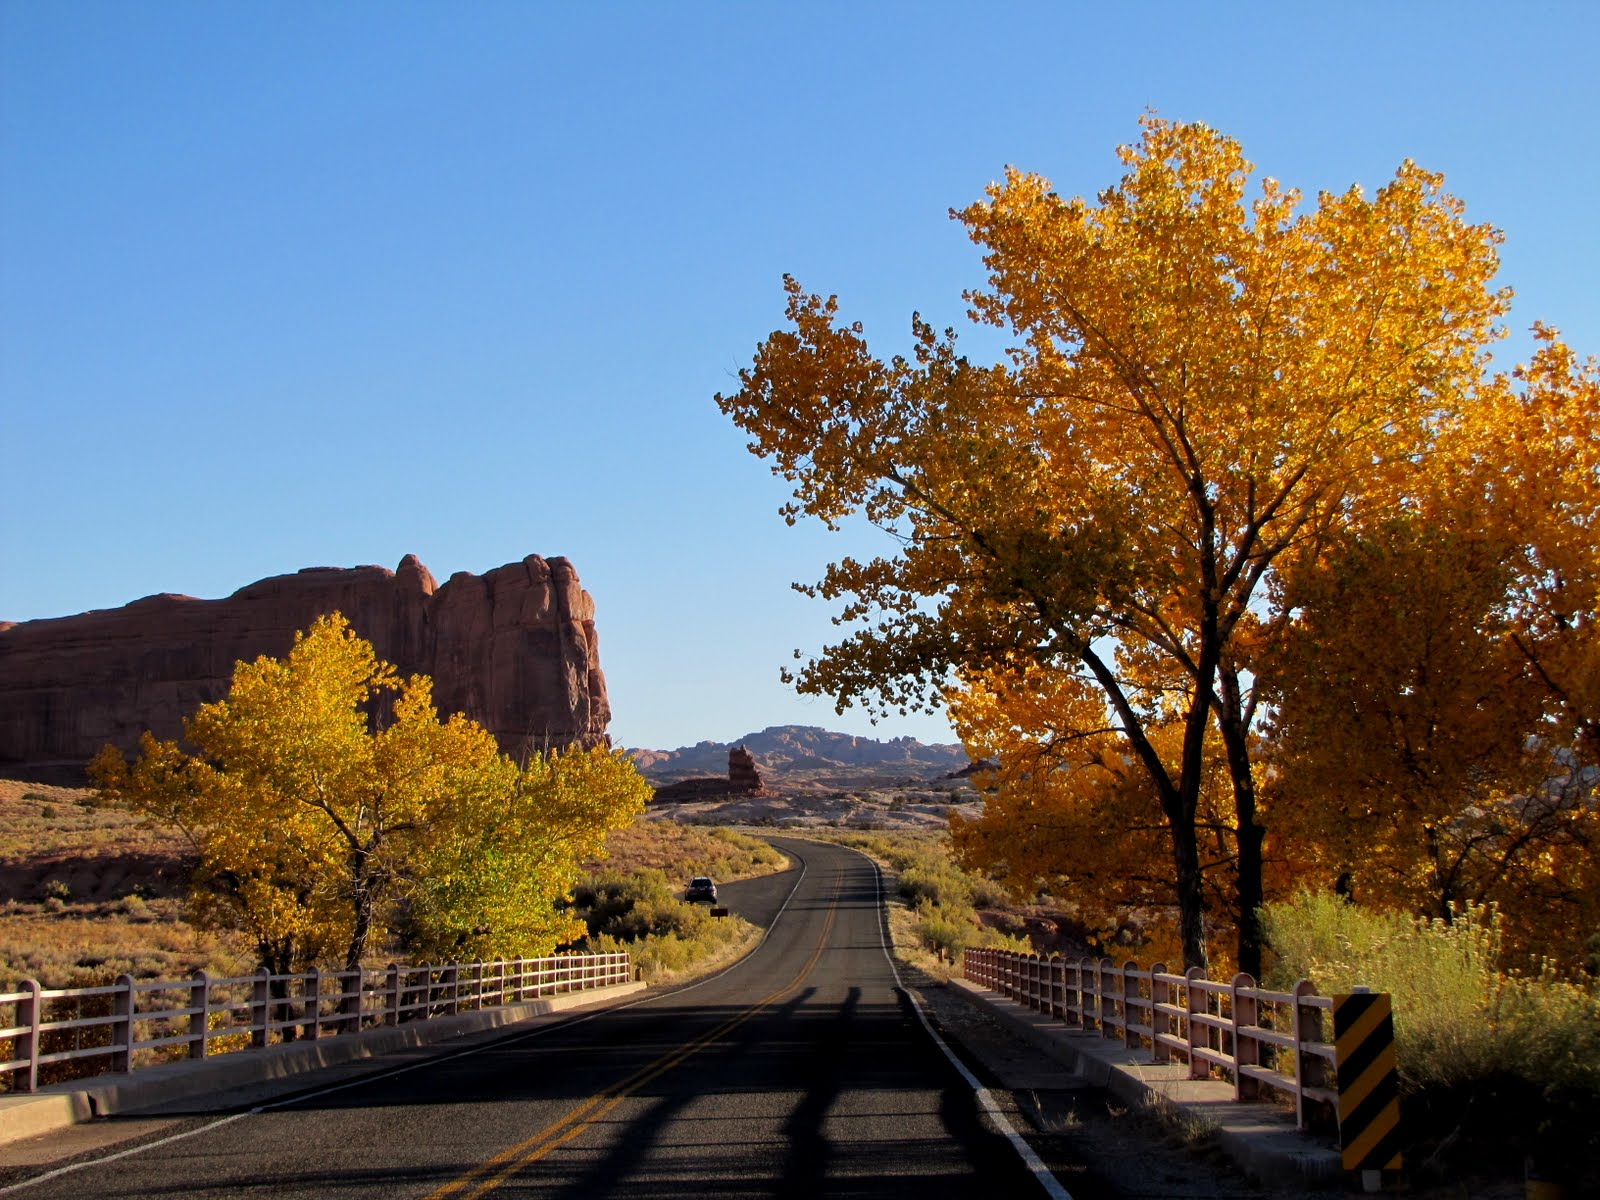 Autumn in Arches National Park